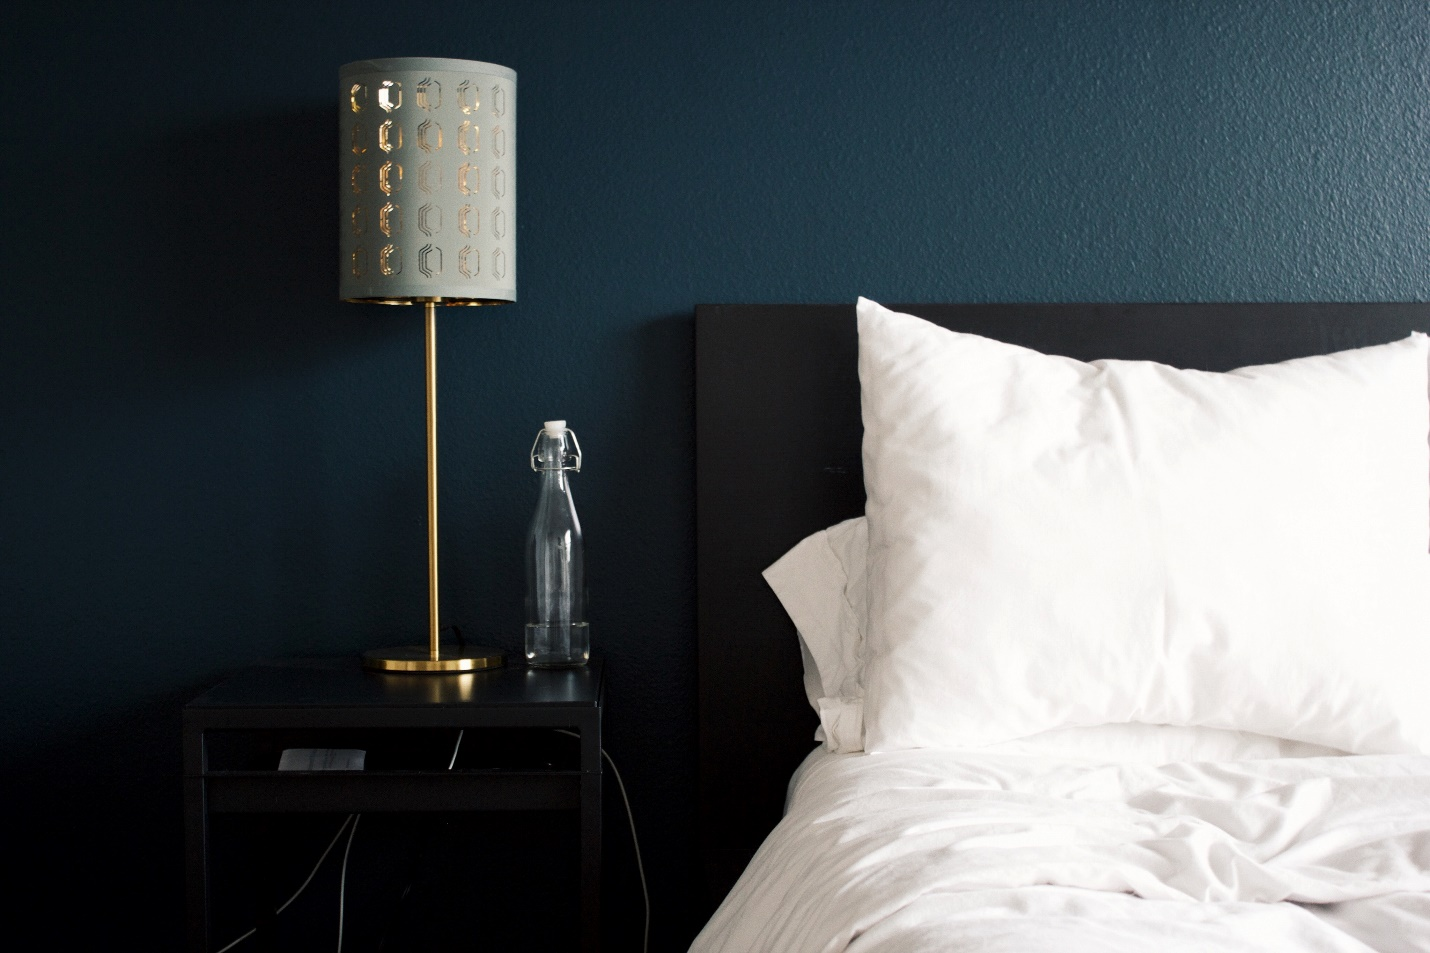 A hotel room bed and nightstand.